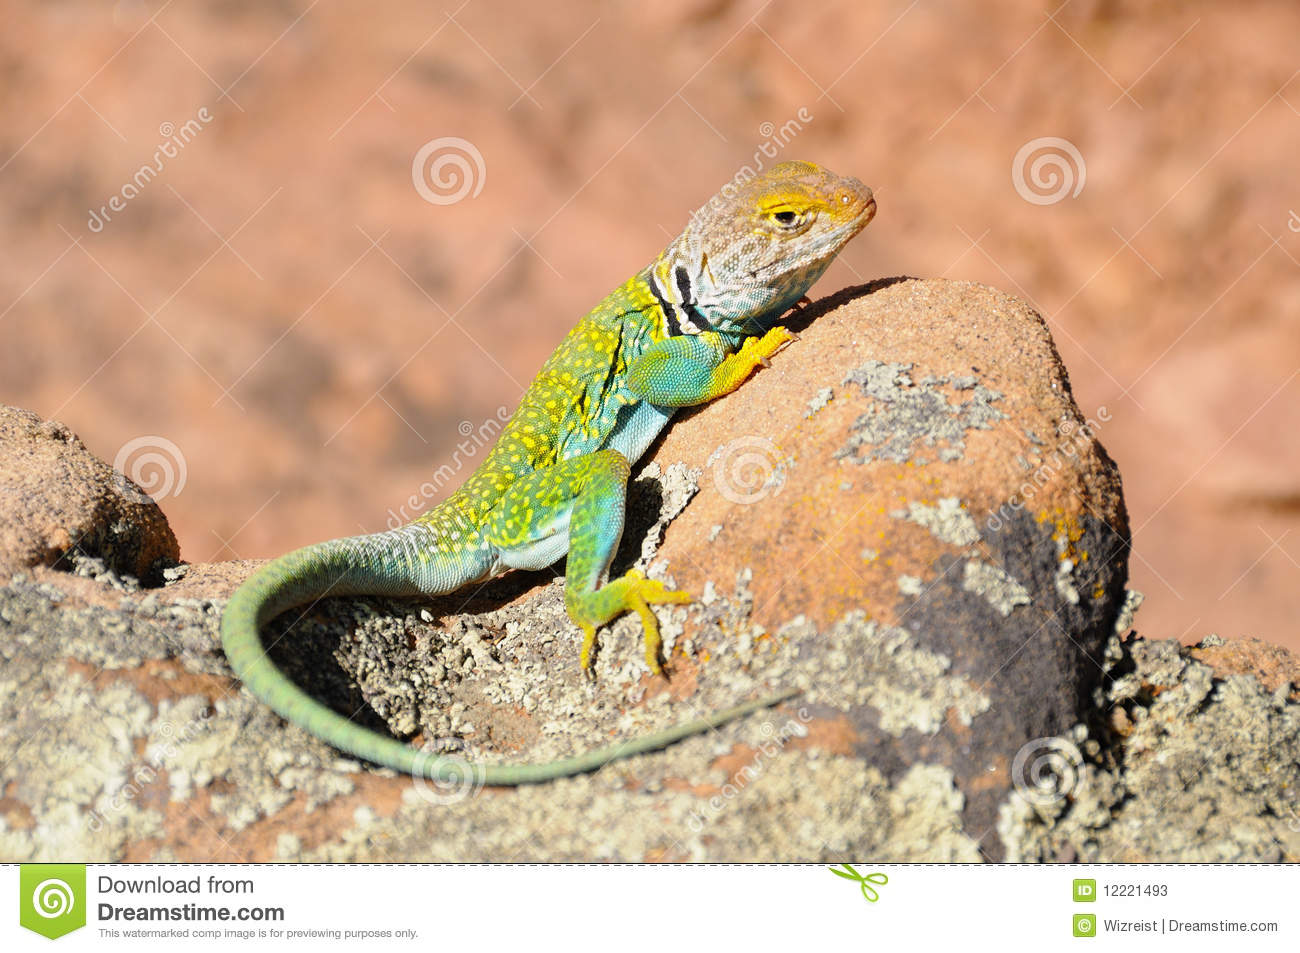 Collared Lizard clipart #9, Download drawings